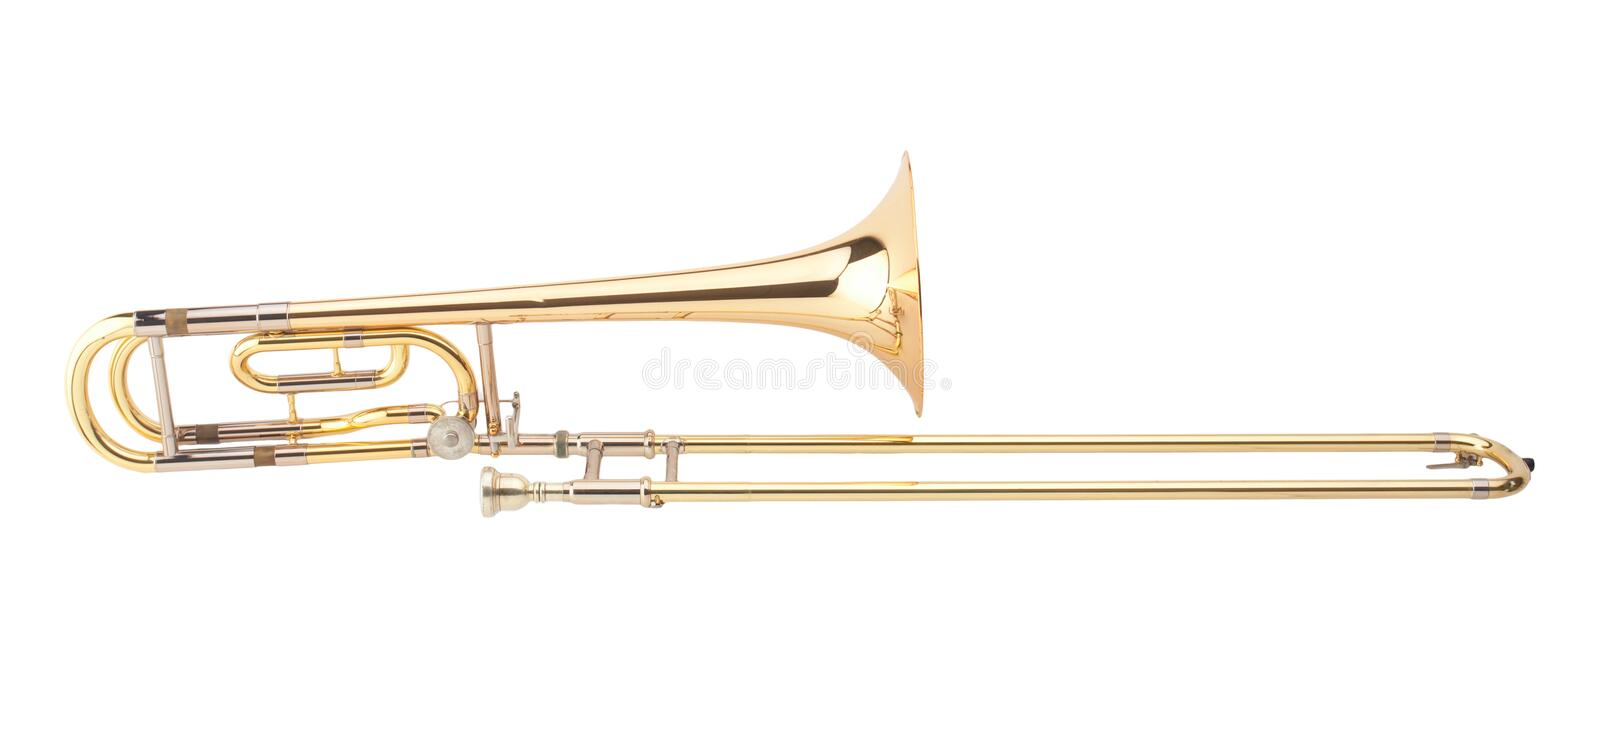 The brass trombone royalty free stock photography